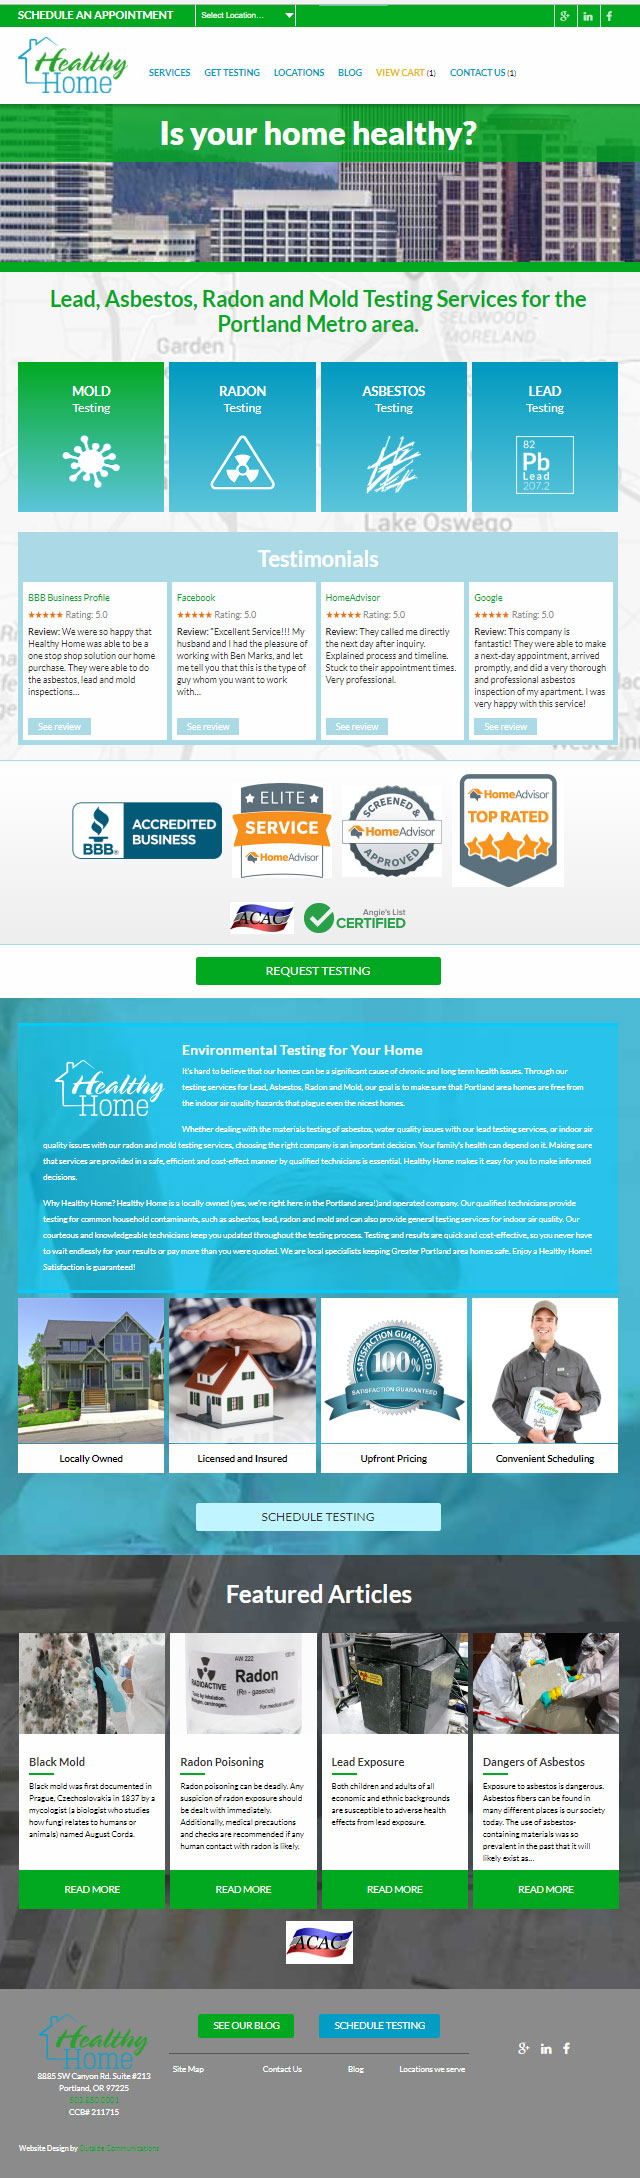 Healthy home website services page